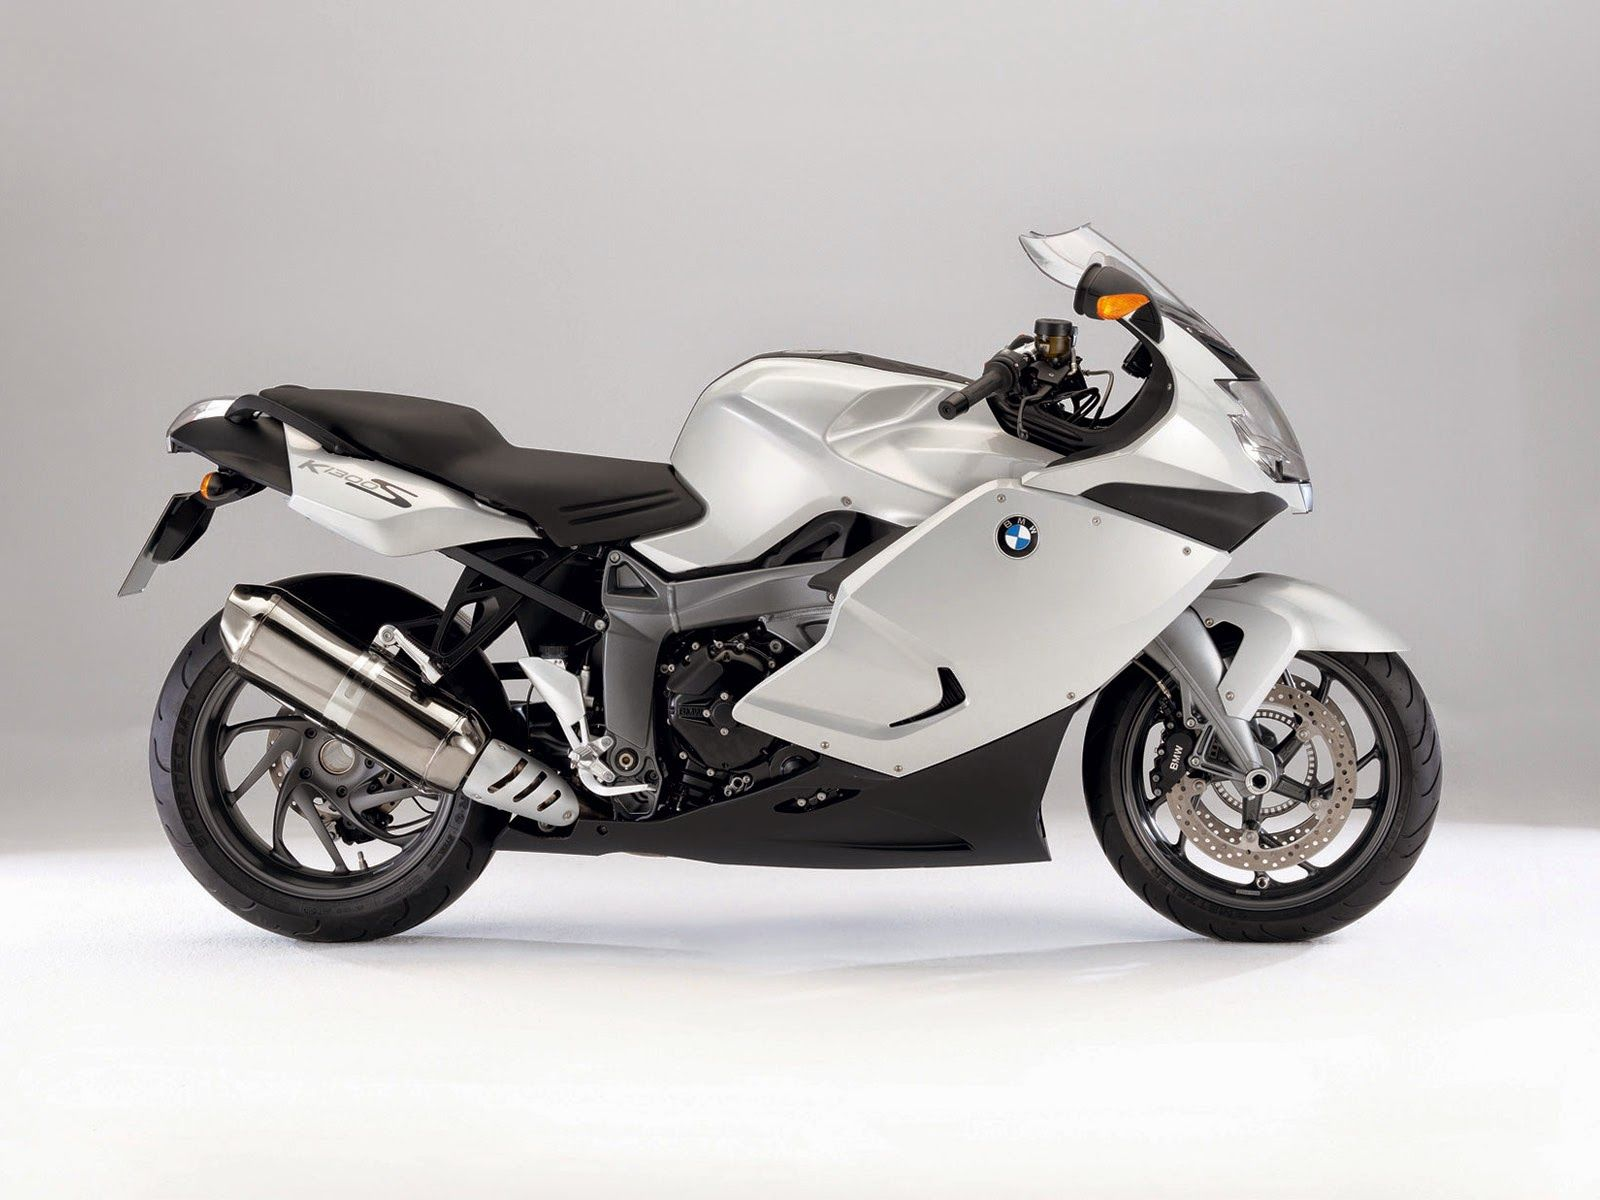 Picture Of 2009 Bmw K1300s Motorcycle Hd Pictures Motorcycle Wallpaper Bmw Motorcycles Bike Bmw